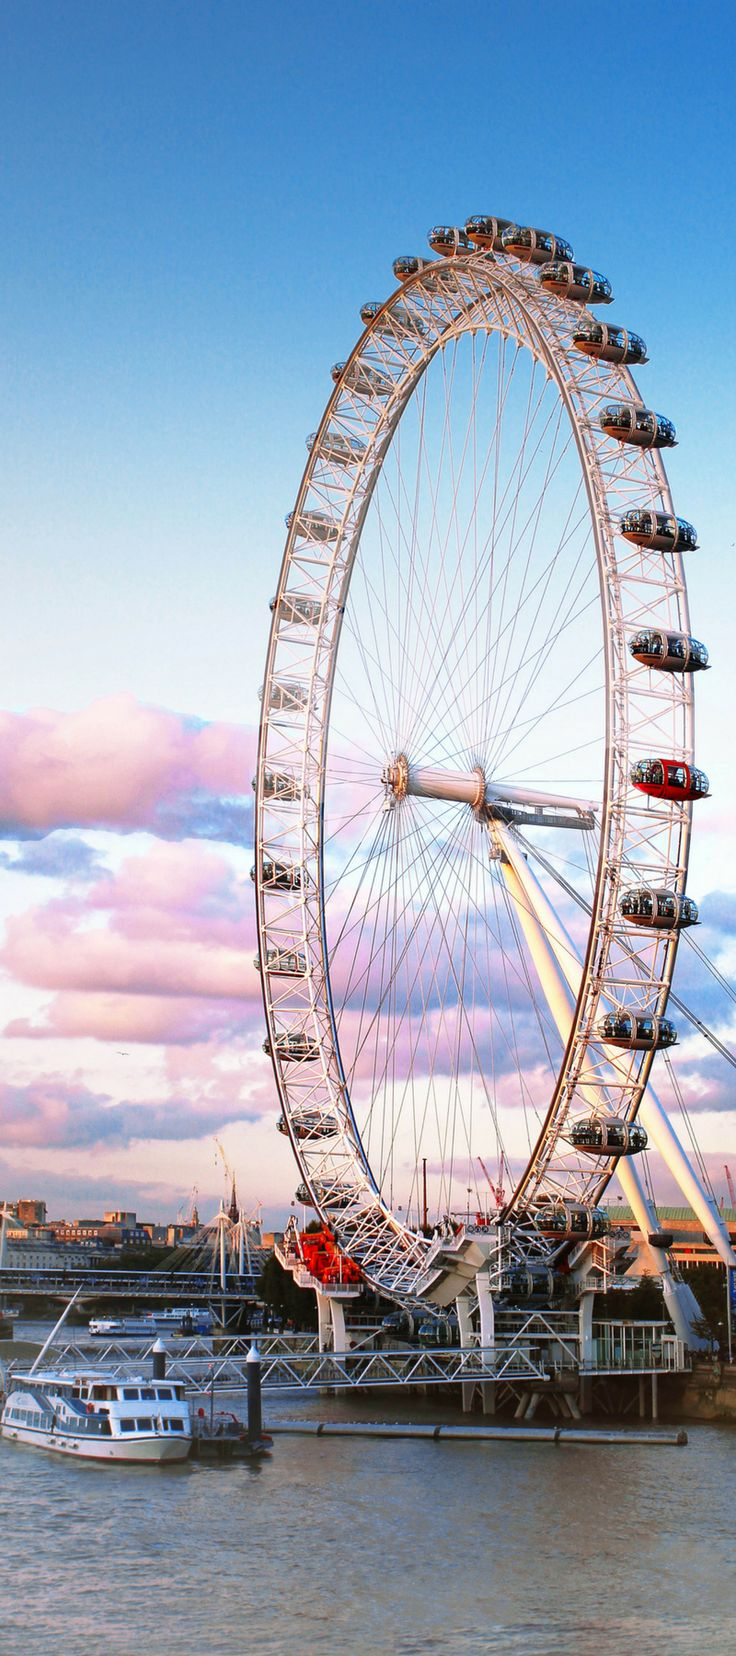 The London Eye! See the top 10 attractions you can't miss when visiting London, England for the first time! Double Decker Buses | Harry Potter Studio Tour | Palace of Westminster (Big Ben) | Avenly Lane Travel